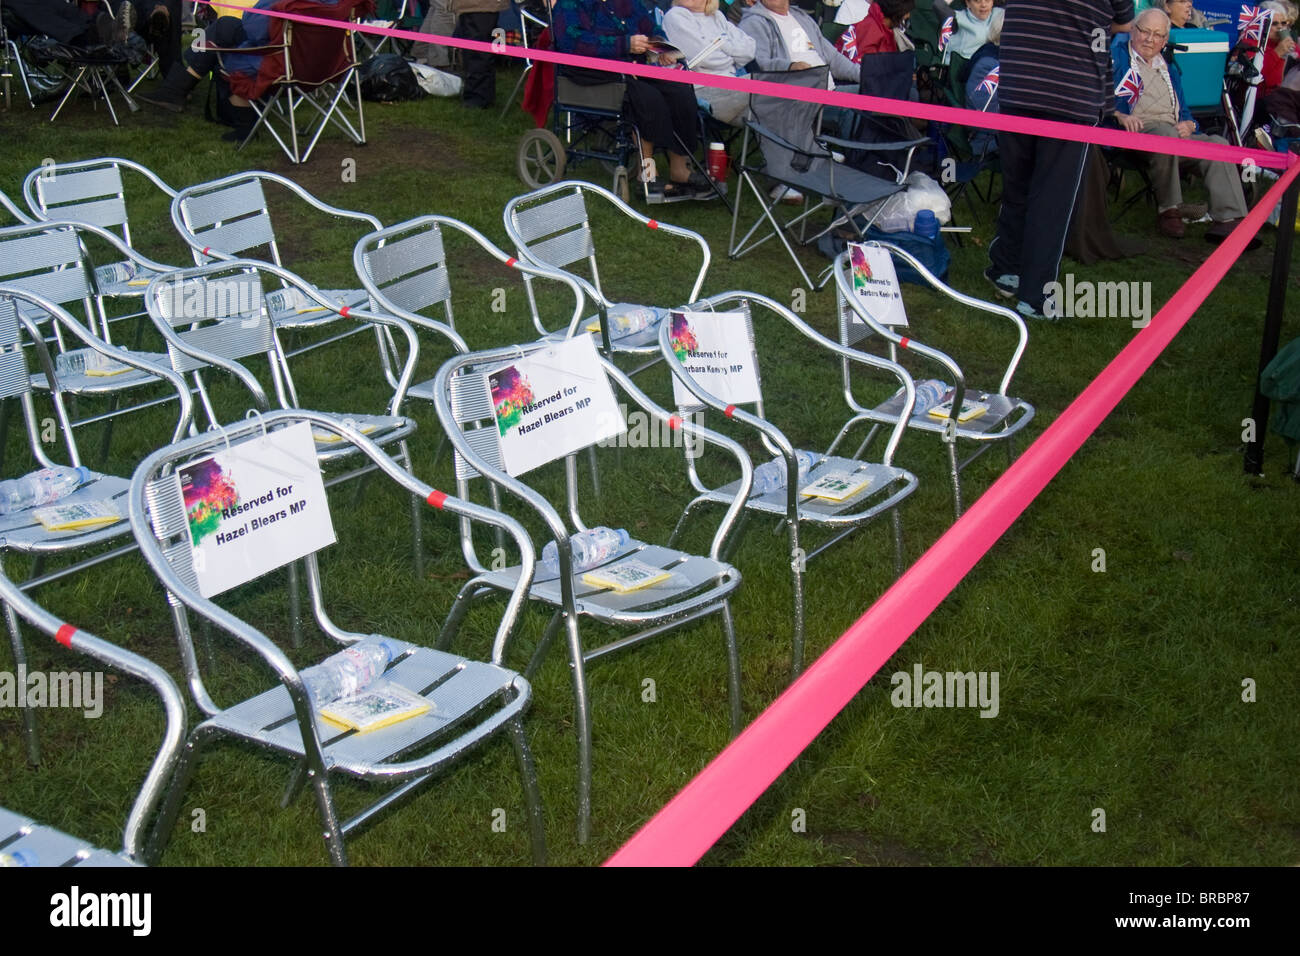 VIP area, BBC Proms in the Park, Buile Hill Park, Salford, Greater Manchester, England, UK - Stock Image